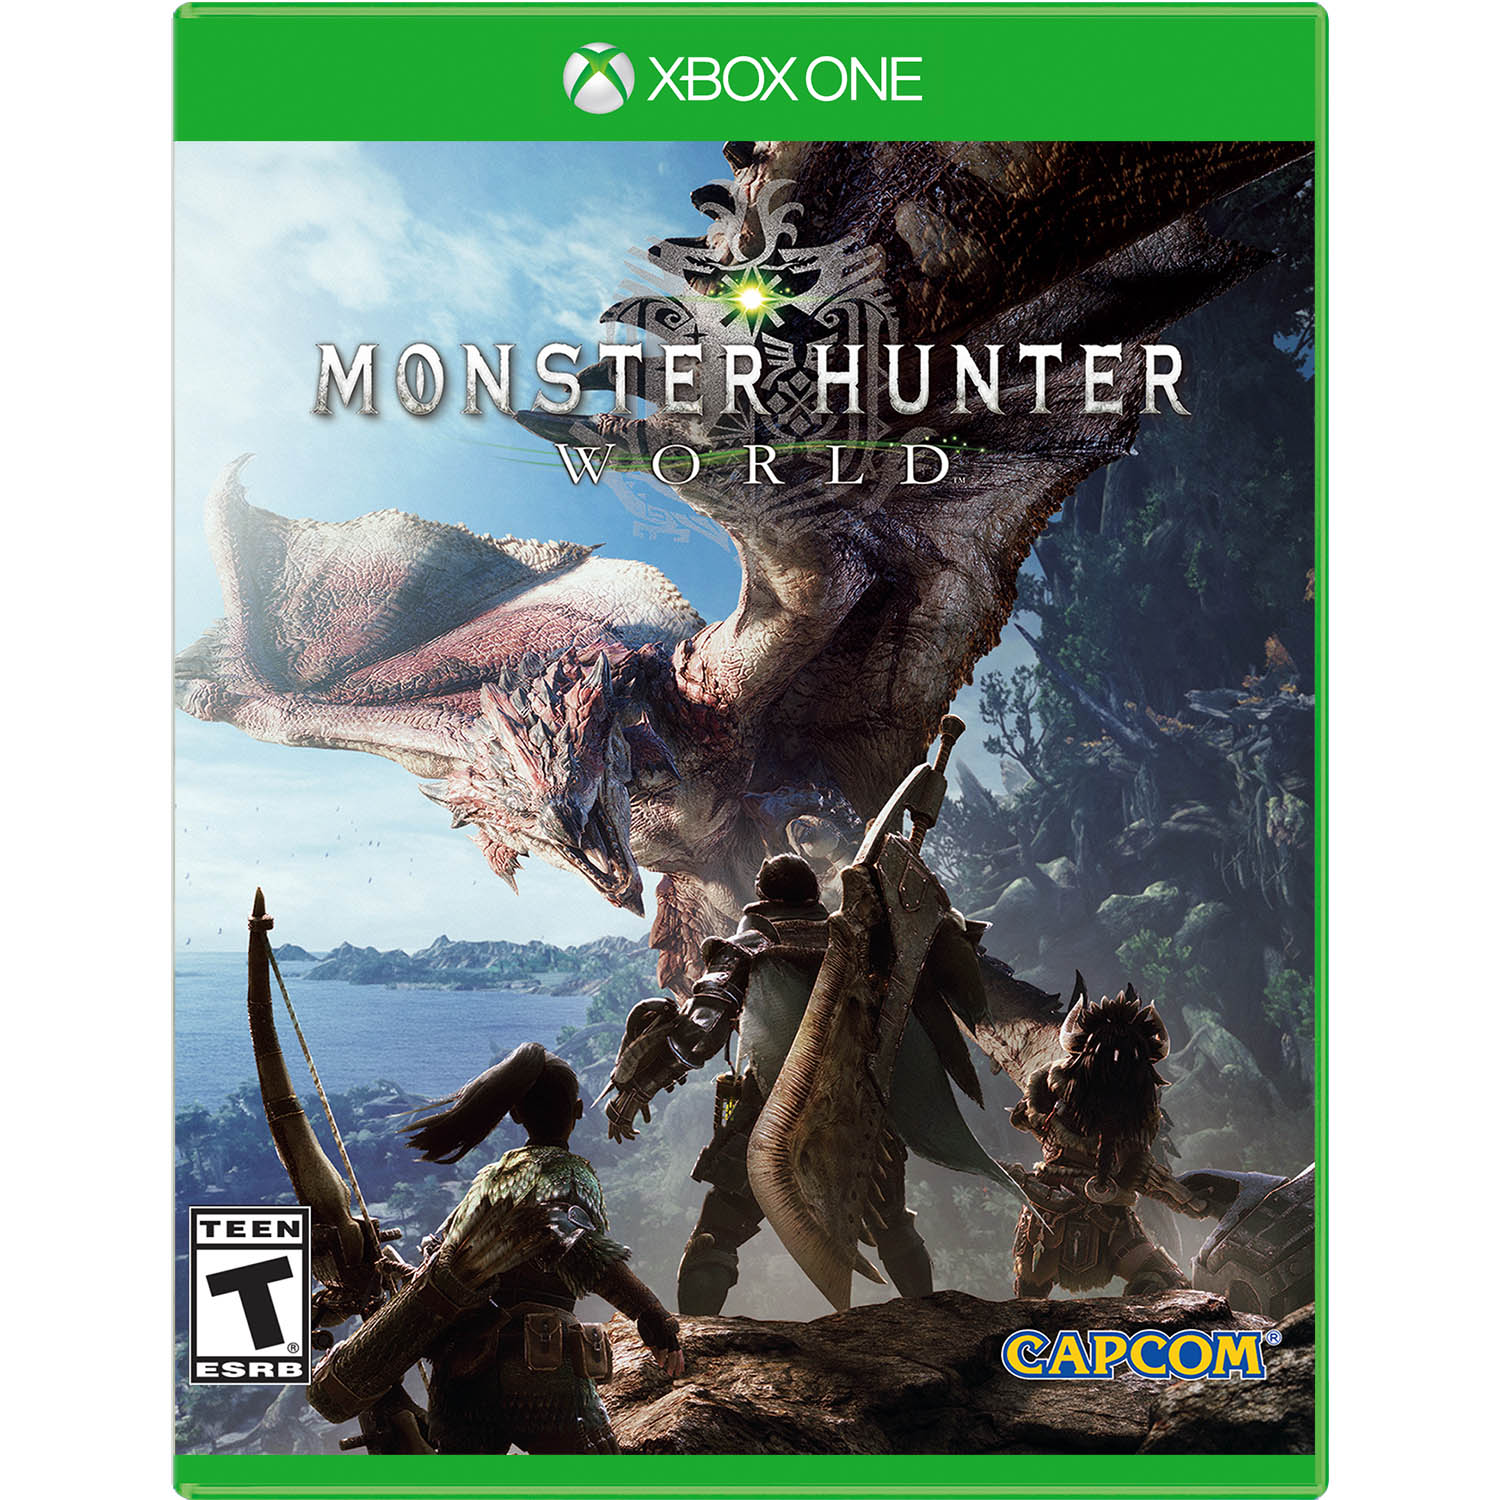 Monster Hunter World, Capcom, Xbox One, REFURBISHED/PREOWNED